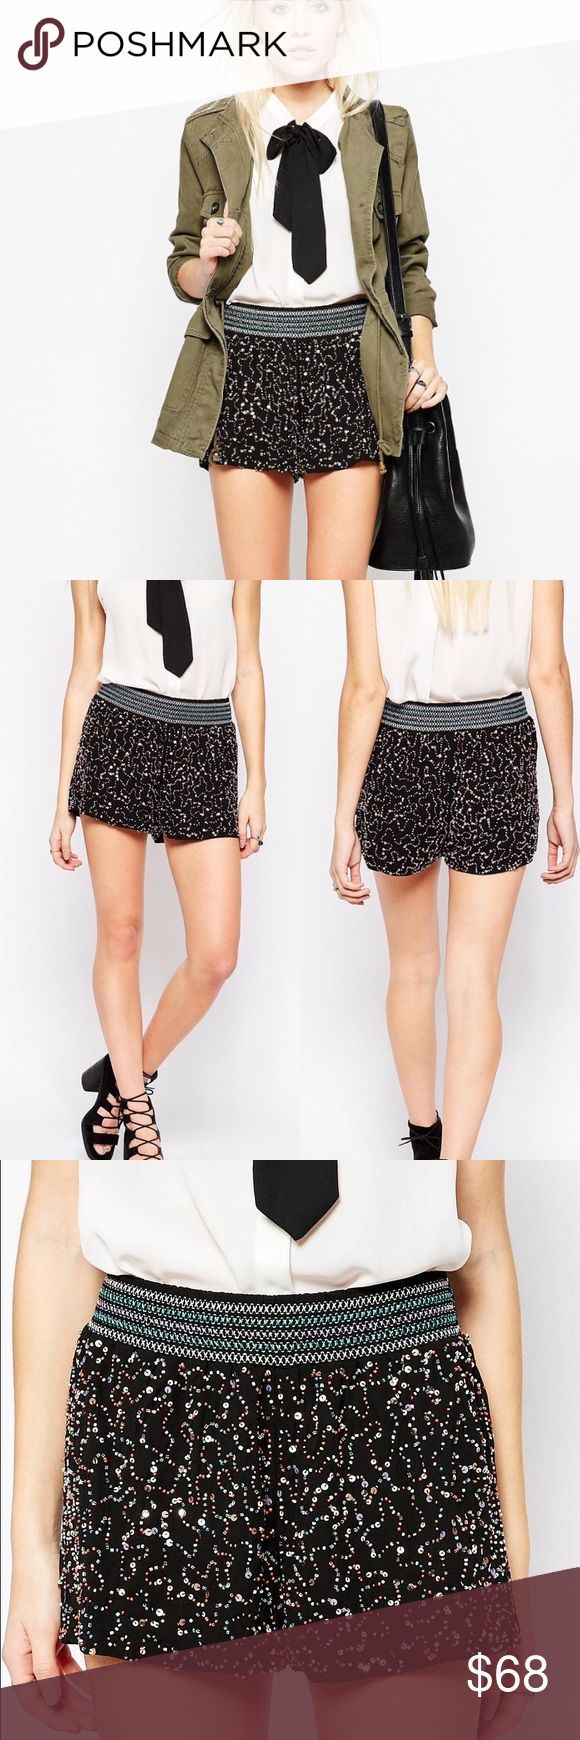 "Raga Embellished Shorts Black Beaded Shorts NWT Raga Embellished Shorts Black Beaded Shorts. Stretch Band Waist, Beautiful Bead Work, Inseam 2.5"", Waist 15"", Hips 21"". Excellent Condition - NWT - No Flaws No Fading. Retail $102.00 #0208170804 ✨Please keep in mind that measurements are provided only as a guide and are approximate.  Color appearance may vary depending on your monitor settings. ASOS Shorts"